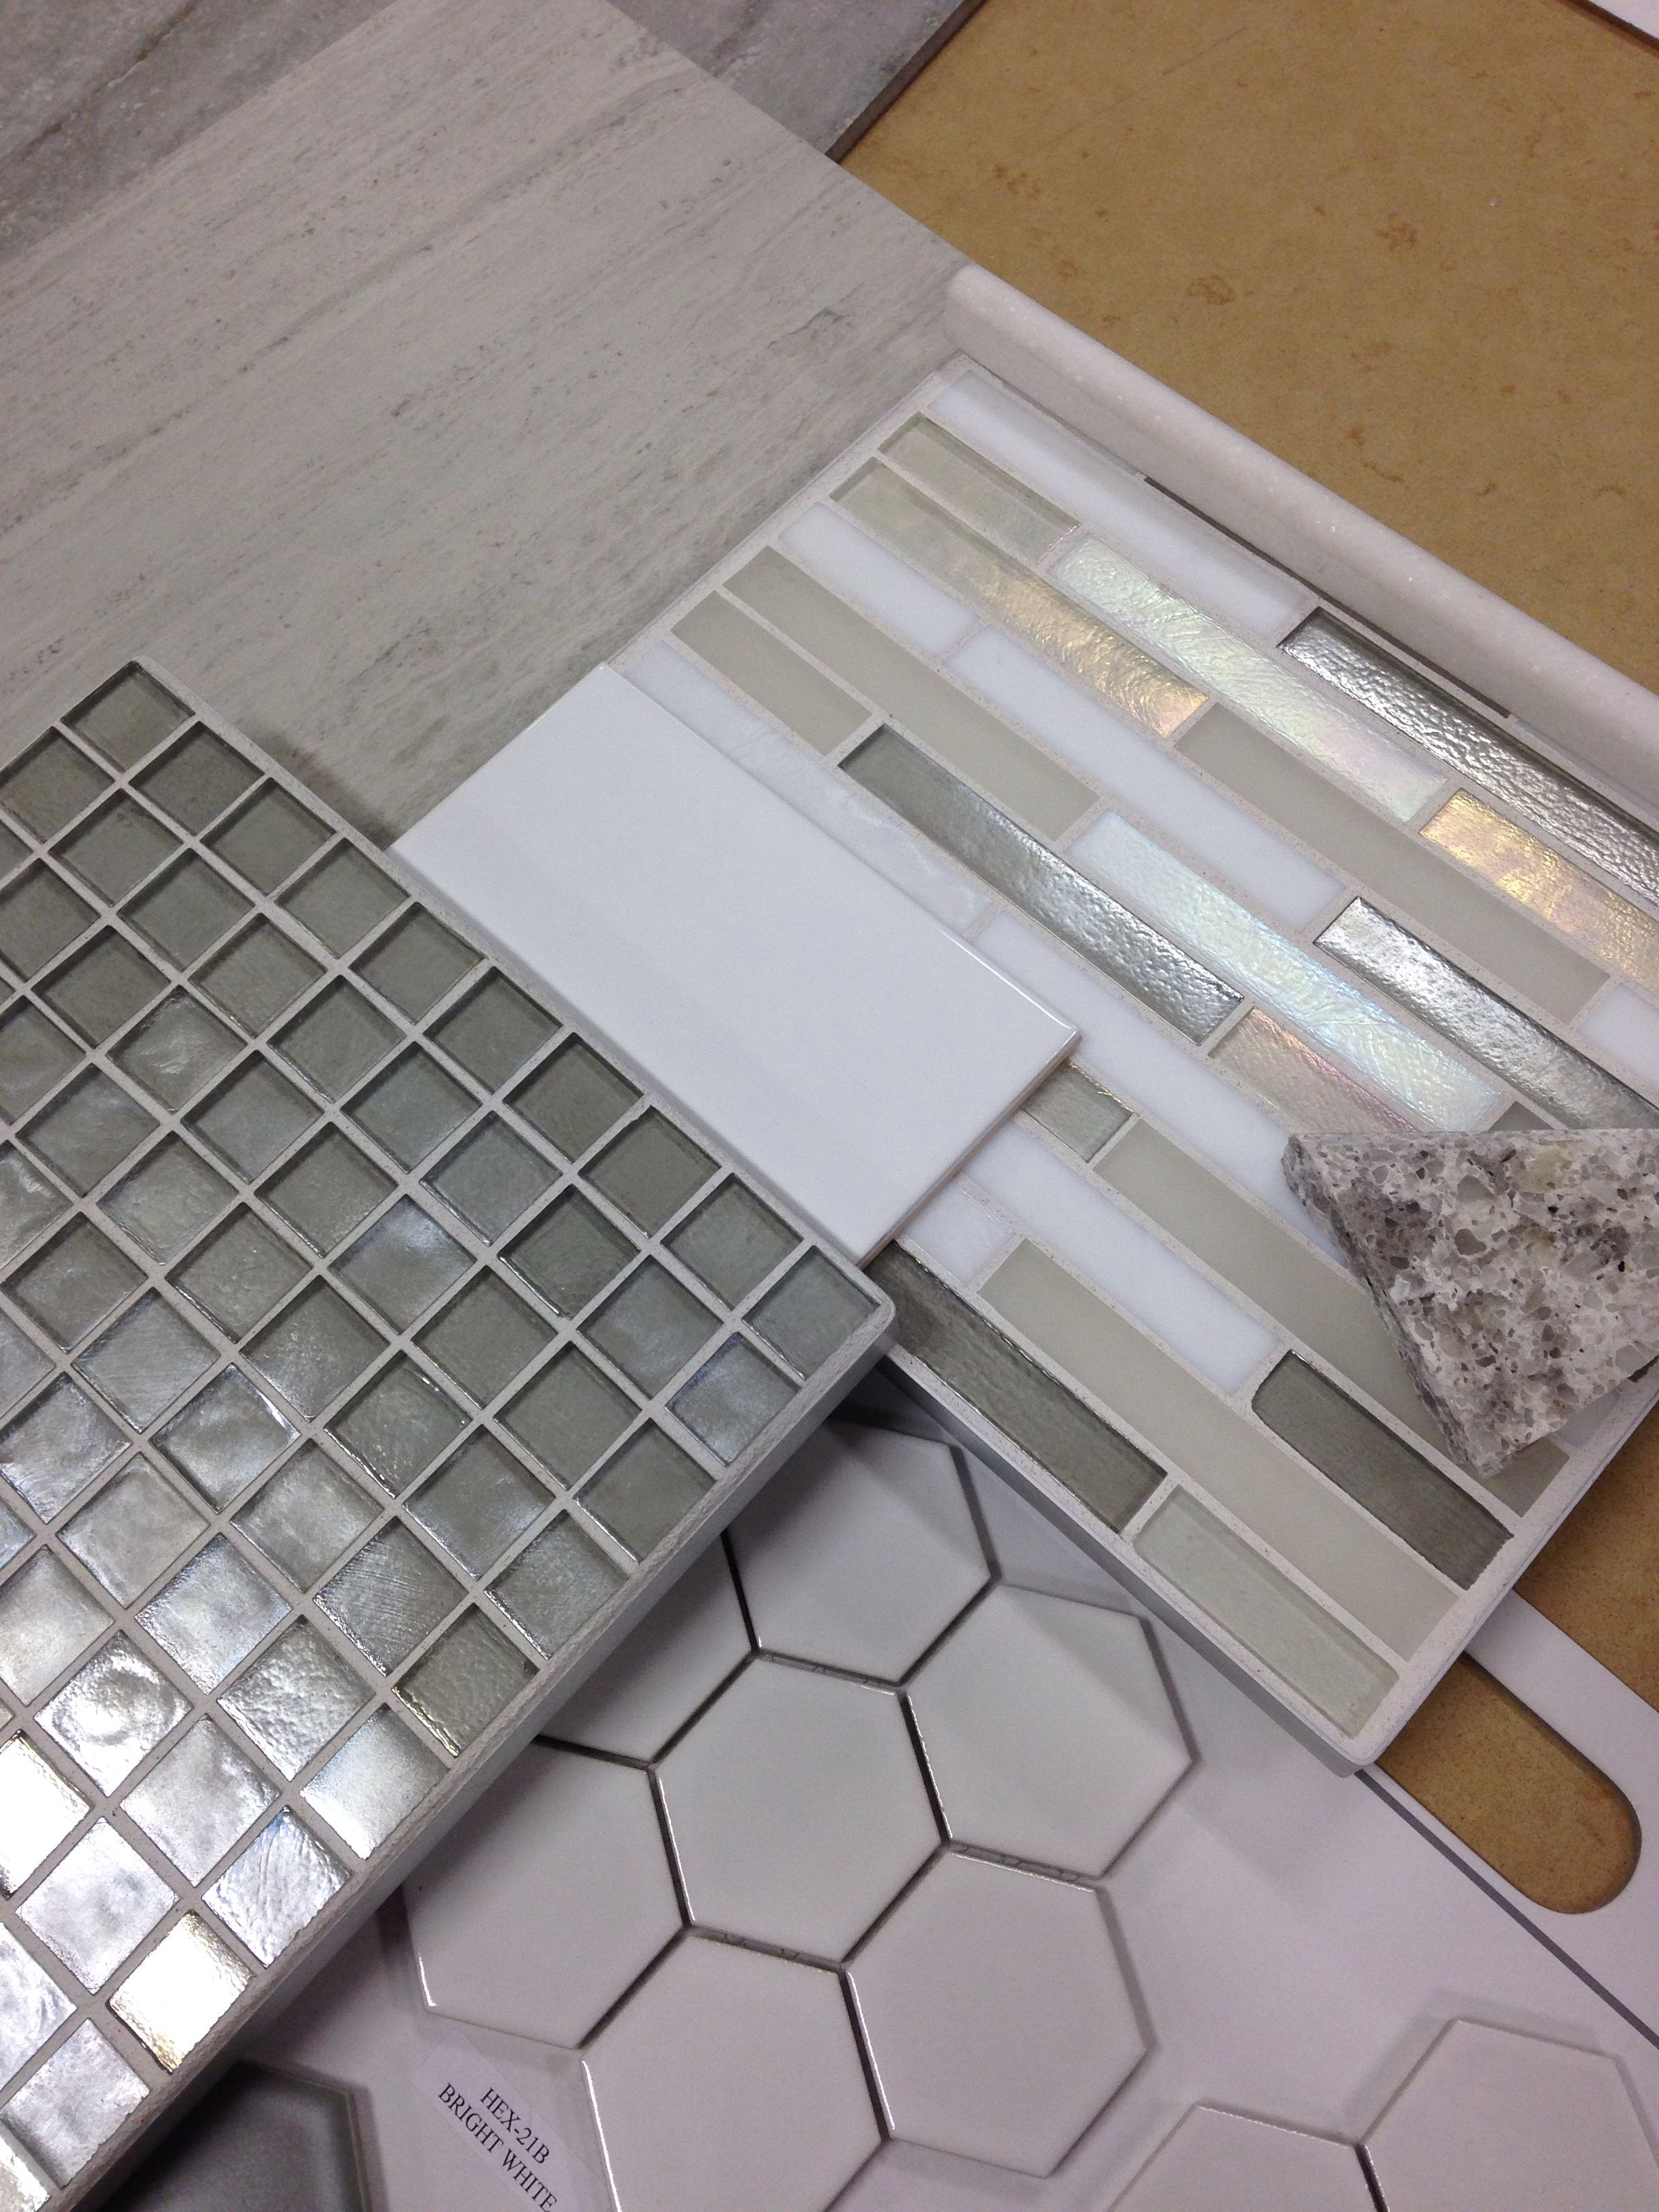 Bathroom tile combo hexagon tiles on shower pan with grey glass boarder gray grout white subway the walls   also